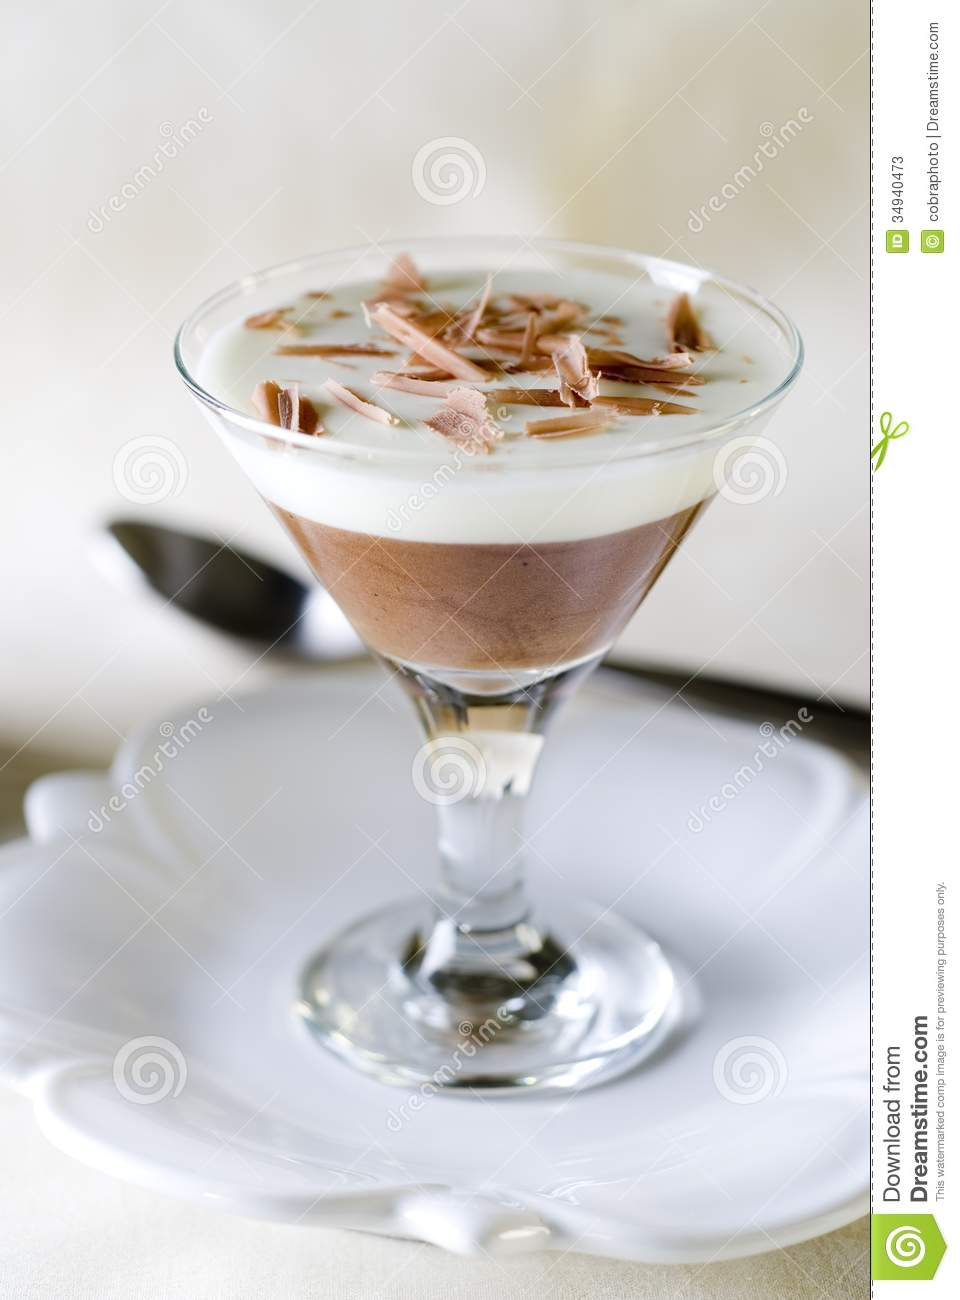 Gallery images and information: White And Dark Chocolate Mousse